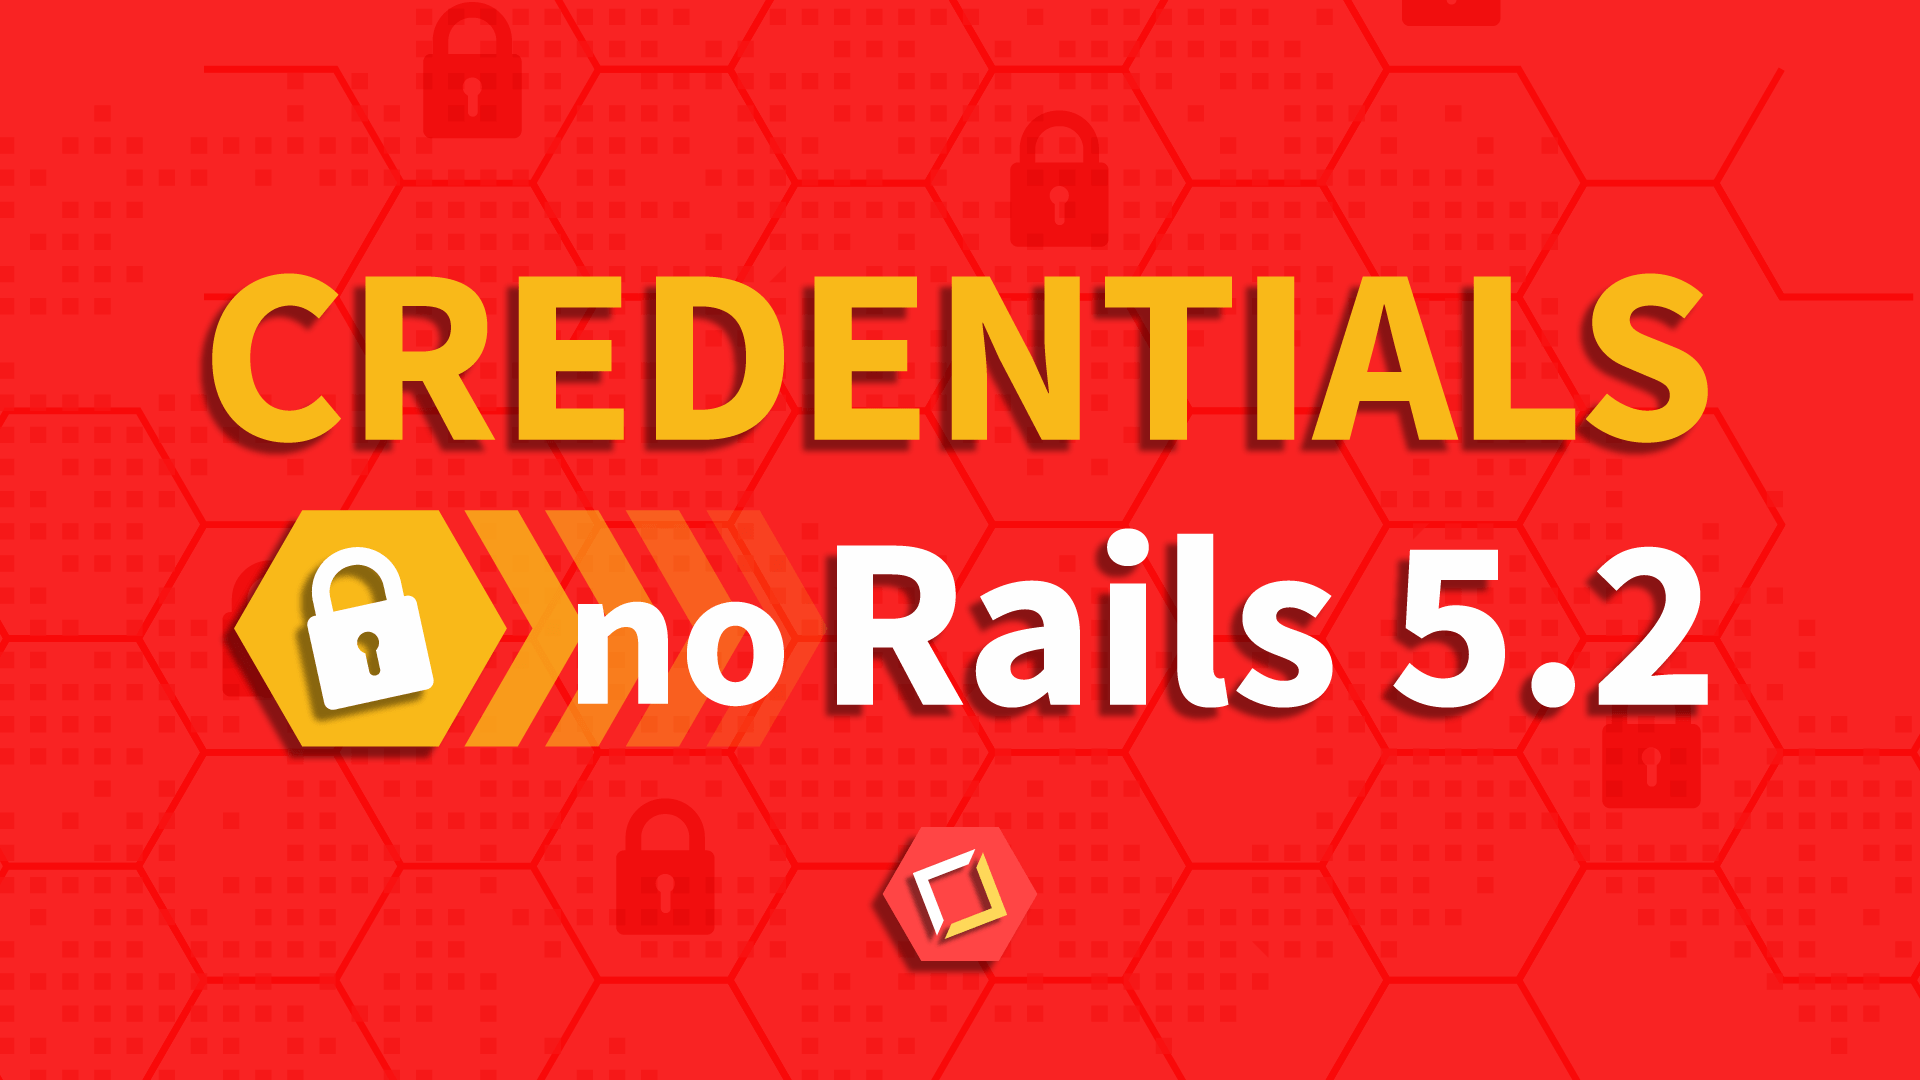 Rails-5.2-Credentials